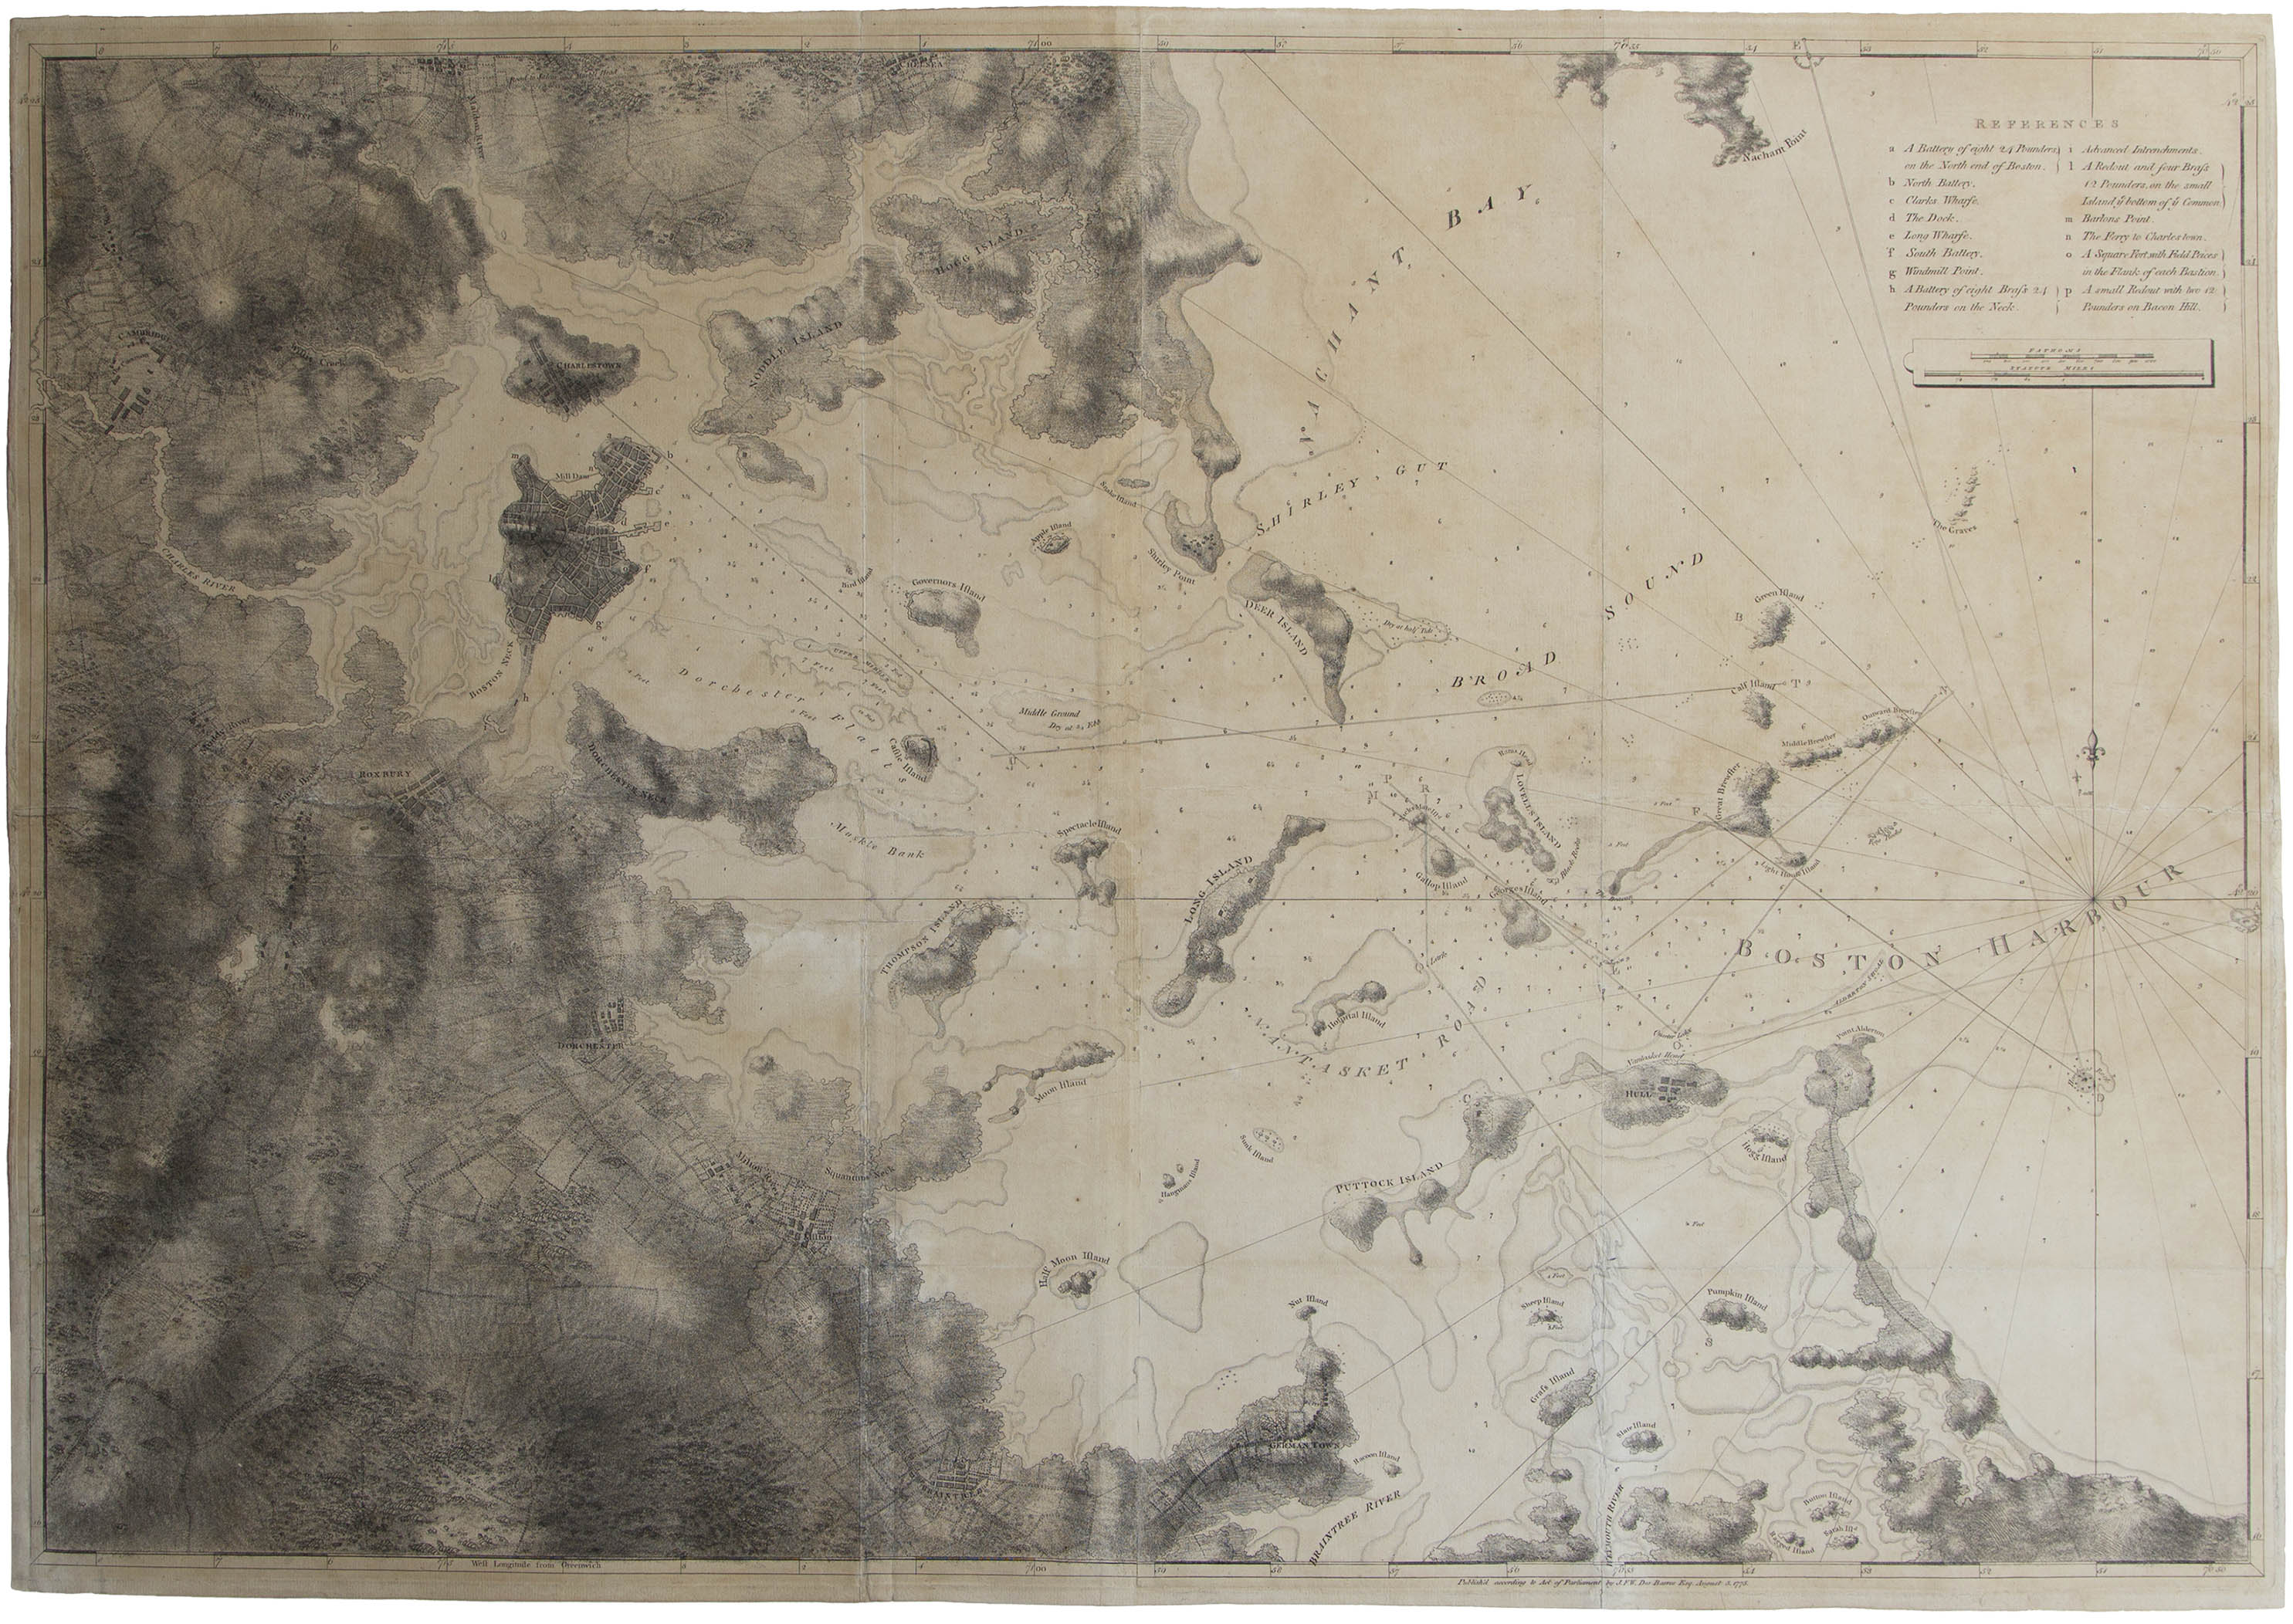 DesBarres Revolutionary War Map of Boston Harbor for Auction NDS on map of boston streets during the revolution, map of boston rhode island, map of boston scotland, map of boston 1776, map of boston 17th century, map of boston during the boston massacre, map of boston art, map of boston united states, map of boston massachusetts, map of boston colonial, map of boston england, map of boston 1800s, map of boston cemeteries, map of revolutionary battles, map of patriot during american revolution victory,